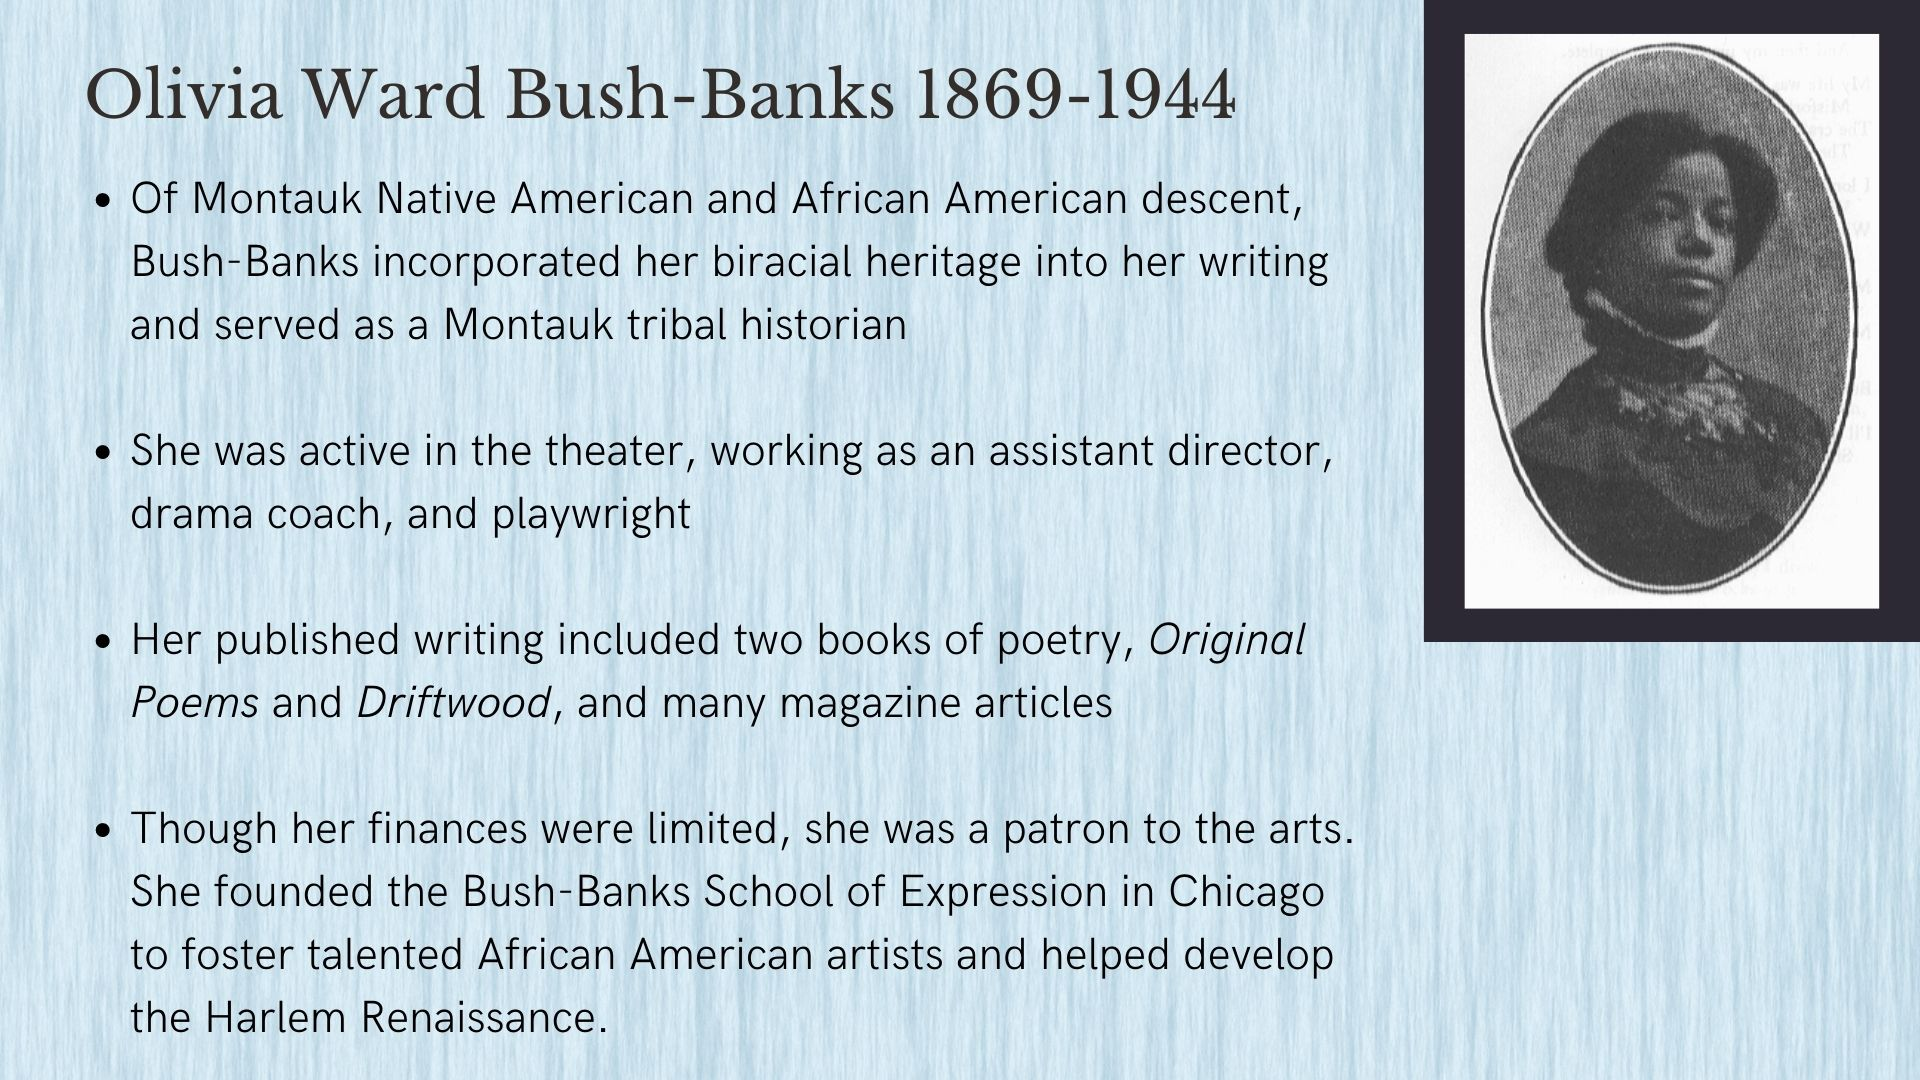 Olivia Ward Bush-Banks 1869-1944 Of Montauk Native American and African American descent, Bush-Banks incorporated her biracial heritage into her writing and served as a Montauk tribal historian  She was active in the theater, working as an assistant director, drama coach, and playwright  Her published writing included two books of poetry, Original Poems and Driftwood, and many magazine articles  Though her finances were limited, she was a patron to the arts. She founded the Bush-Banks School of Expression in Chicago to foster talented African American artists and helped develop the Harlem Renaissance.